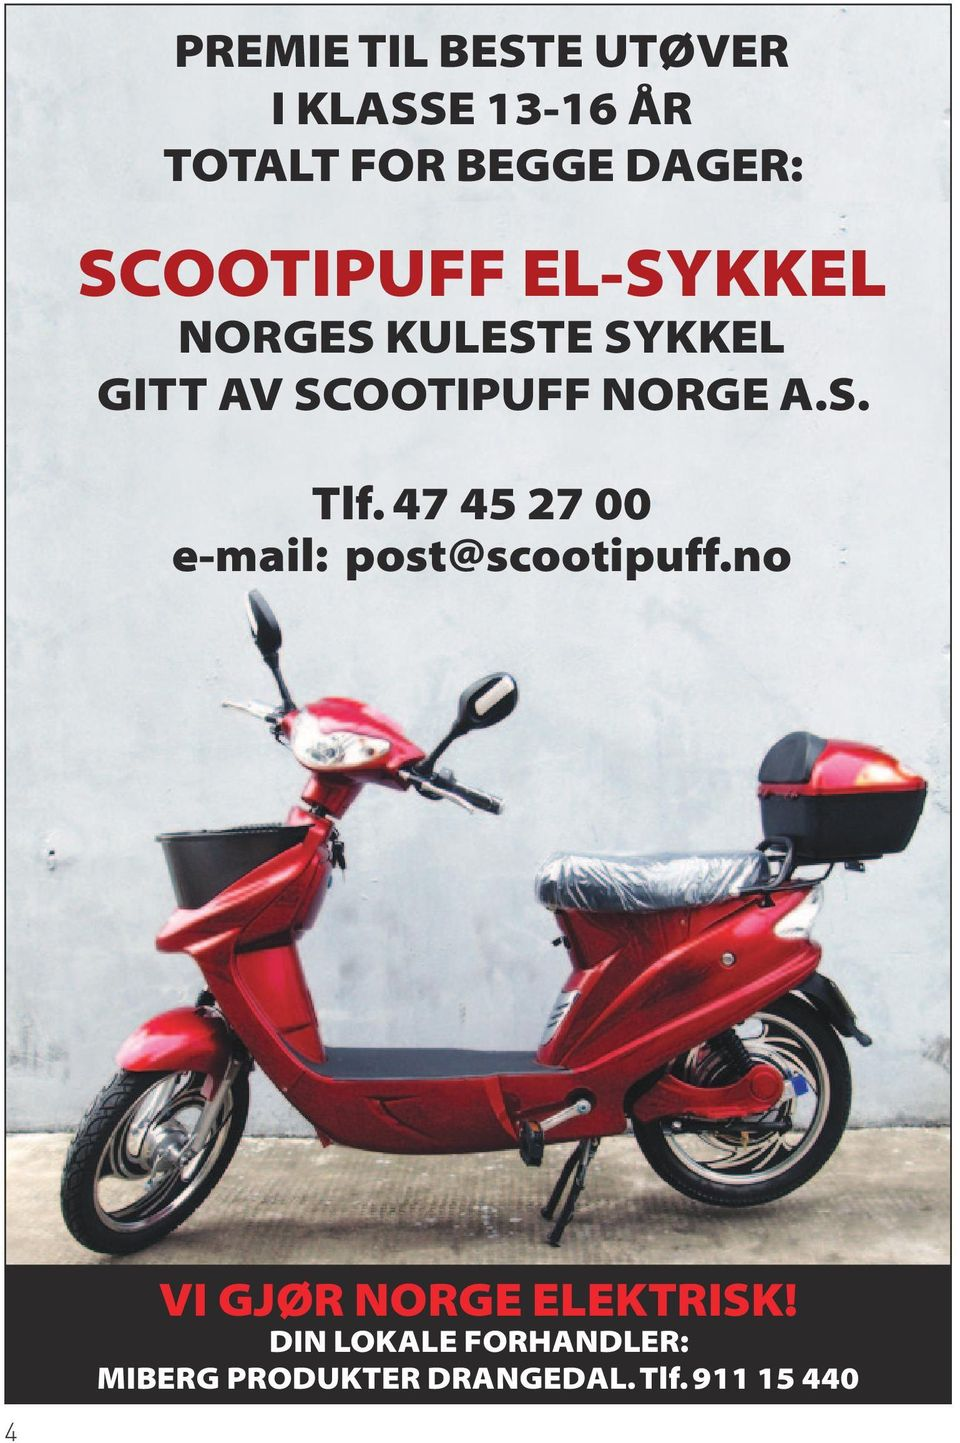 A.S. Tlf. 47 45 27 00 e-mail: post@scootipuff.